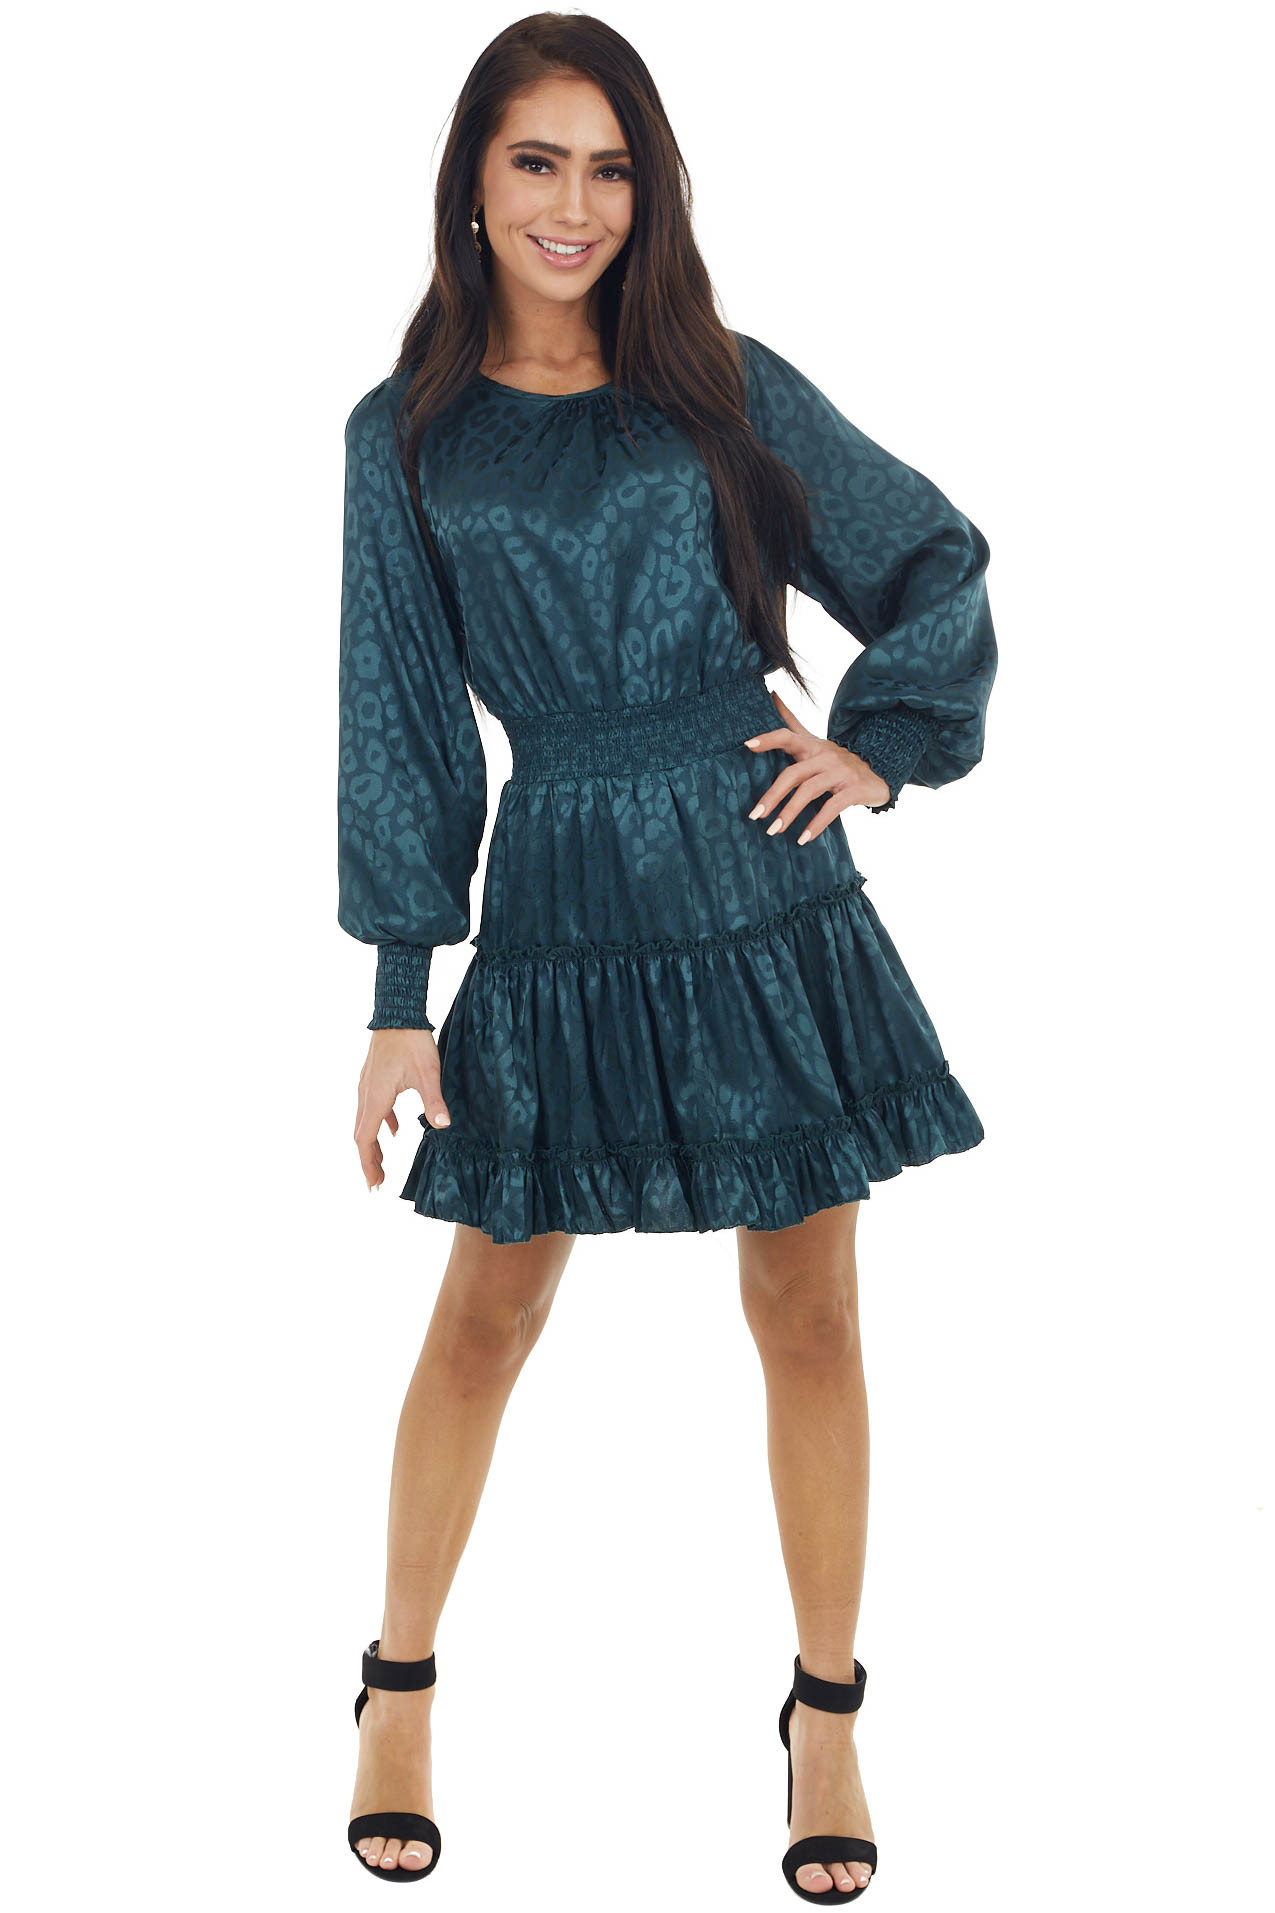 Dark Teal Leopard Print Satin Smocked Short Dress